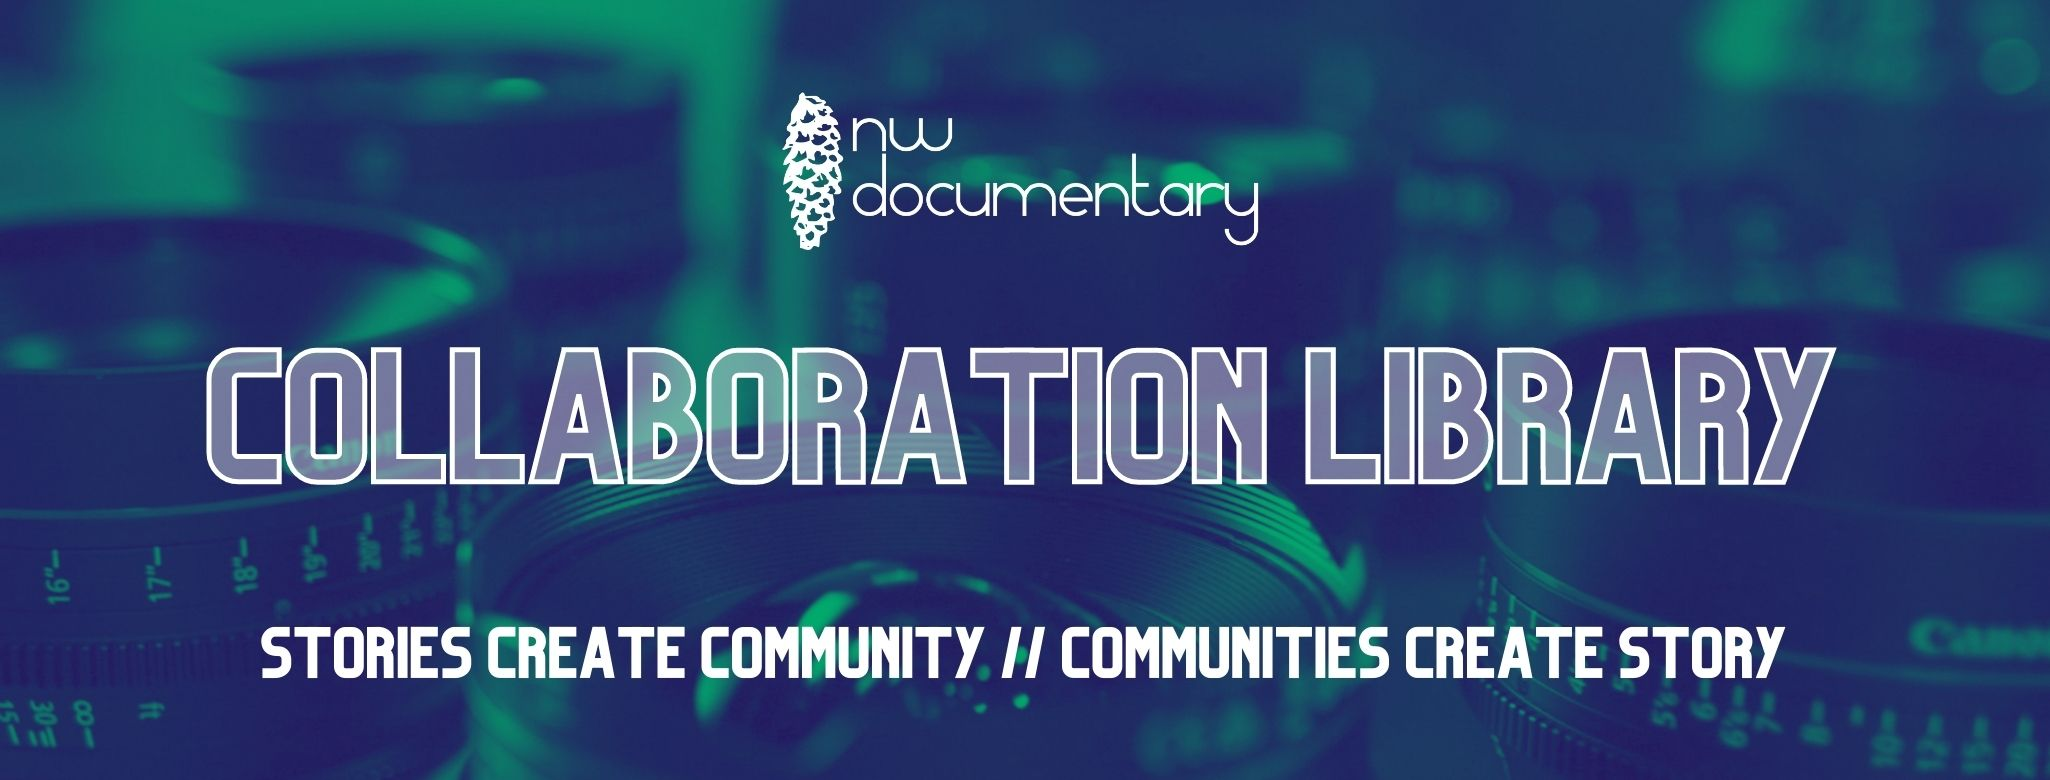 NW Documentary Collaboration Library: Stories Create Community // Communities Create Story